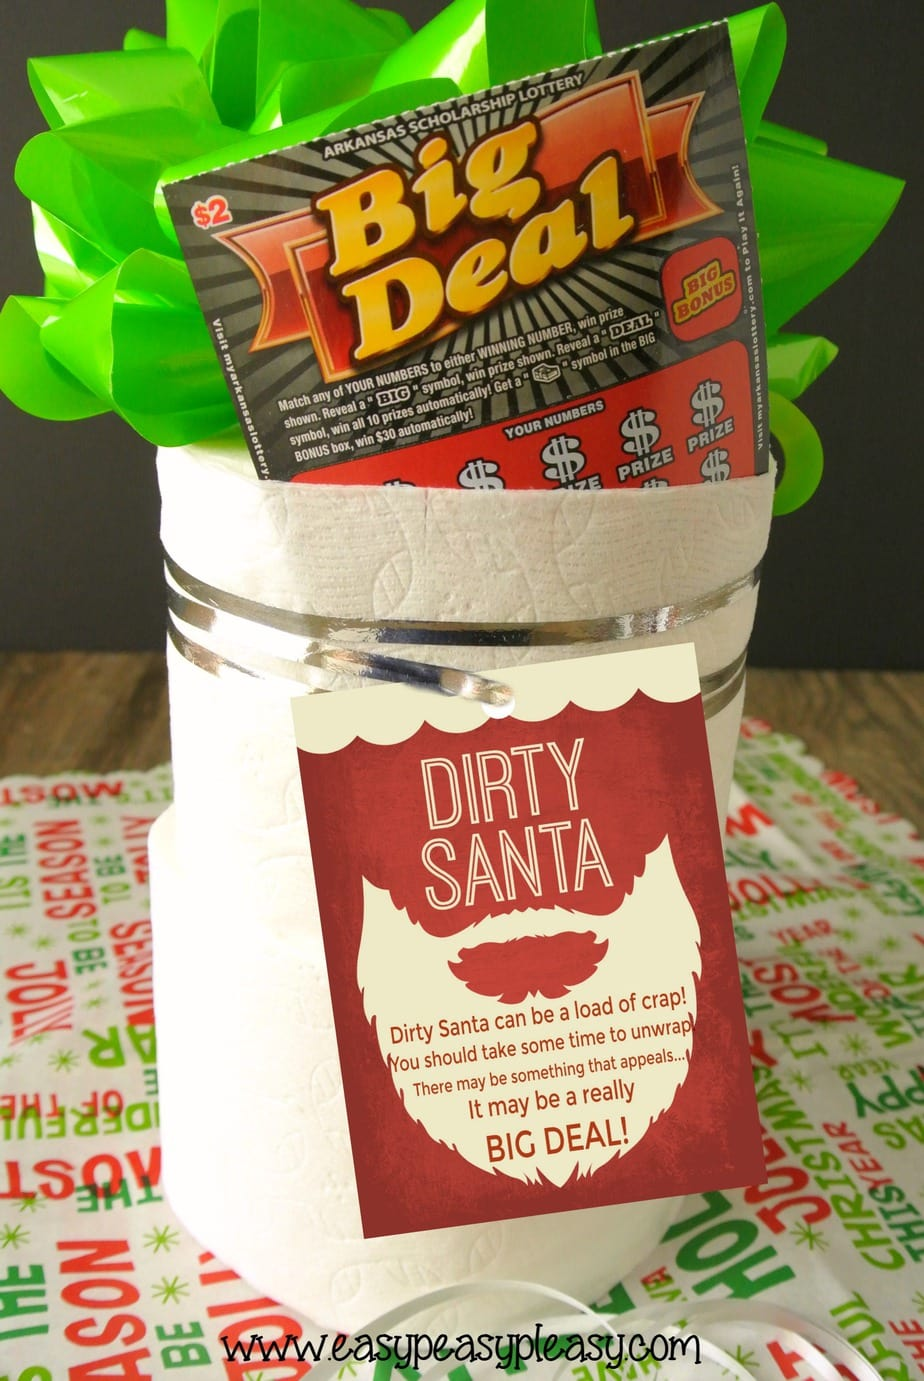 Dirty Santa Gift Idea with free printable gift tags incorporating Arkansas Scholarship Scratch Off Lottery Tickets.